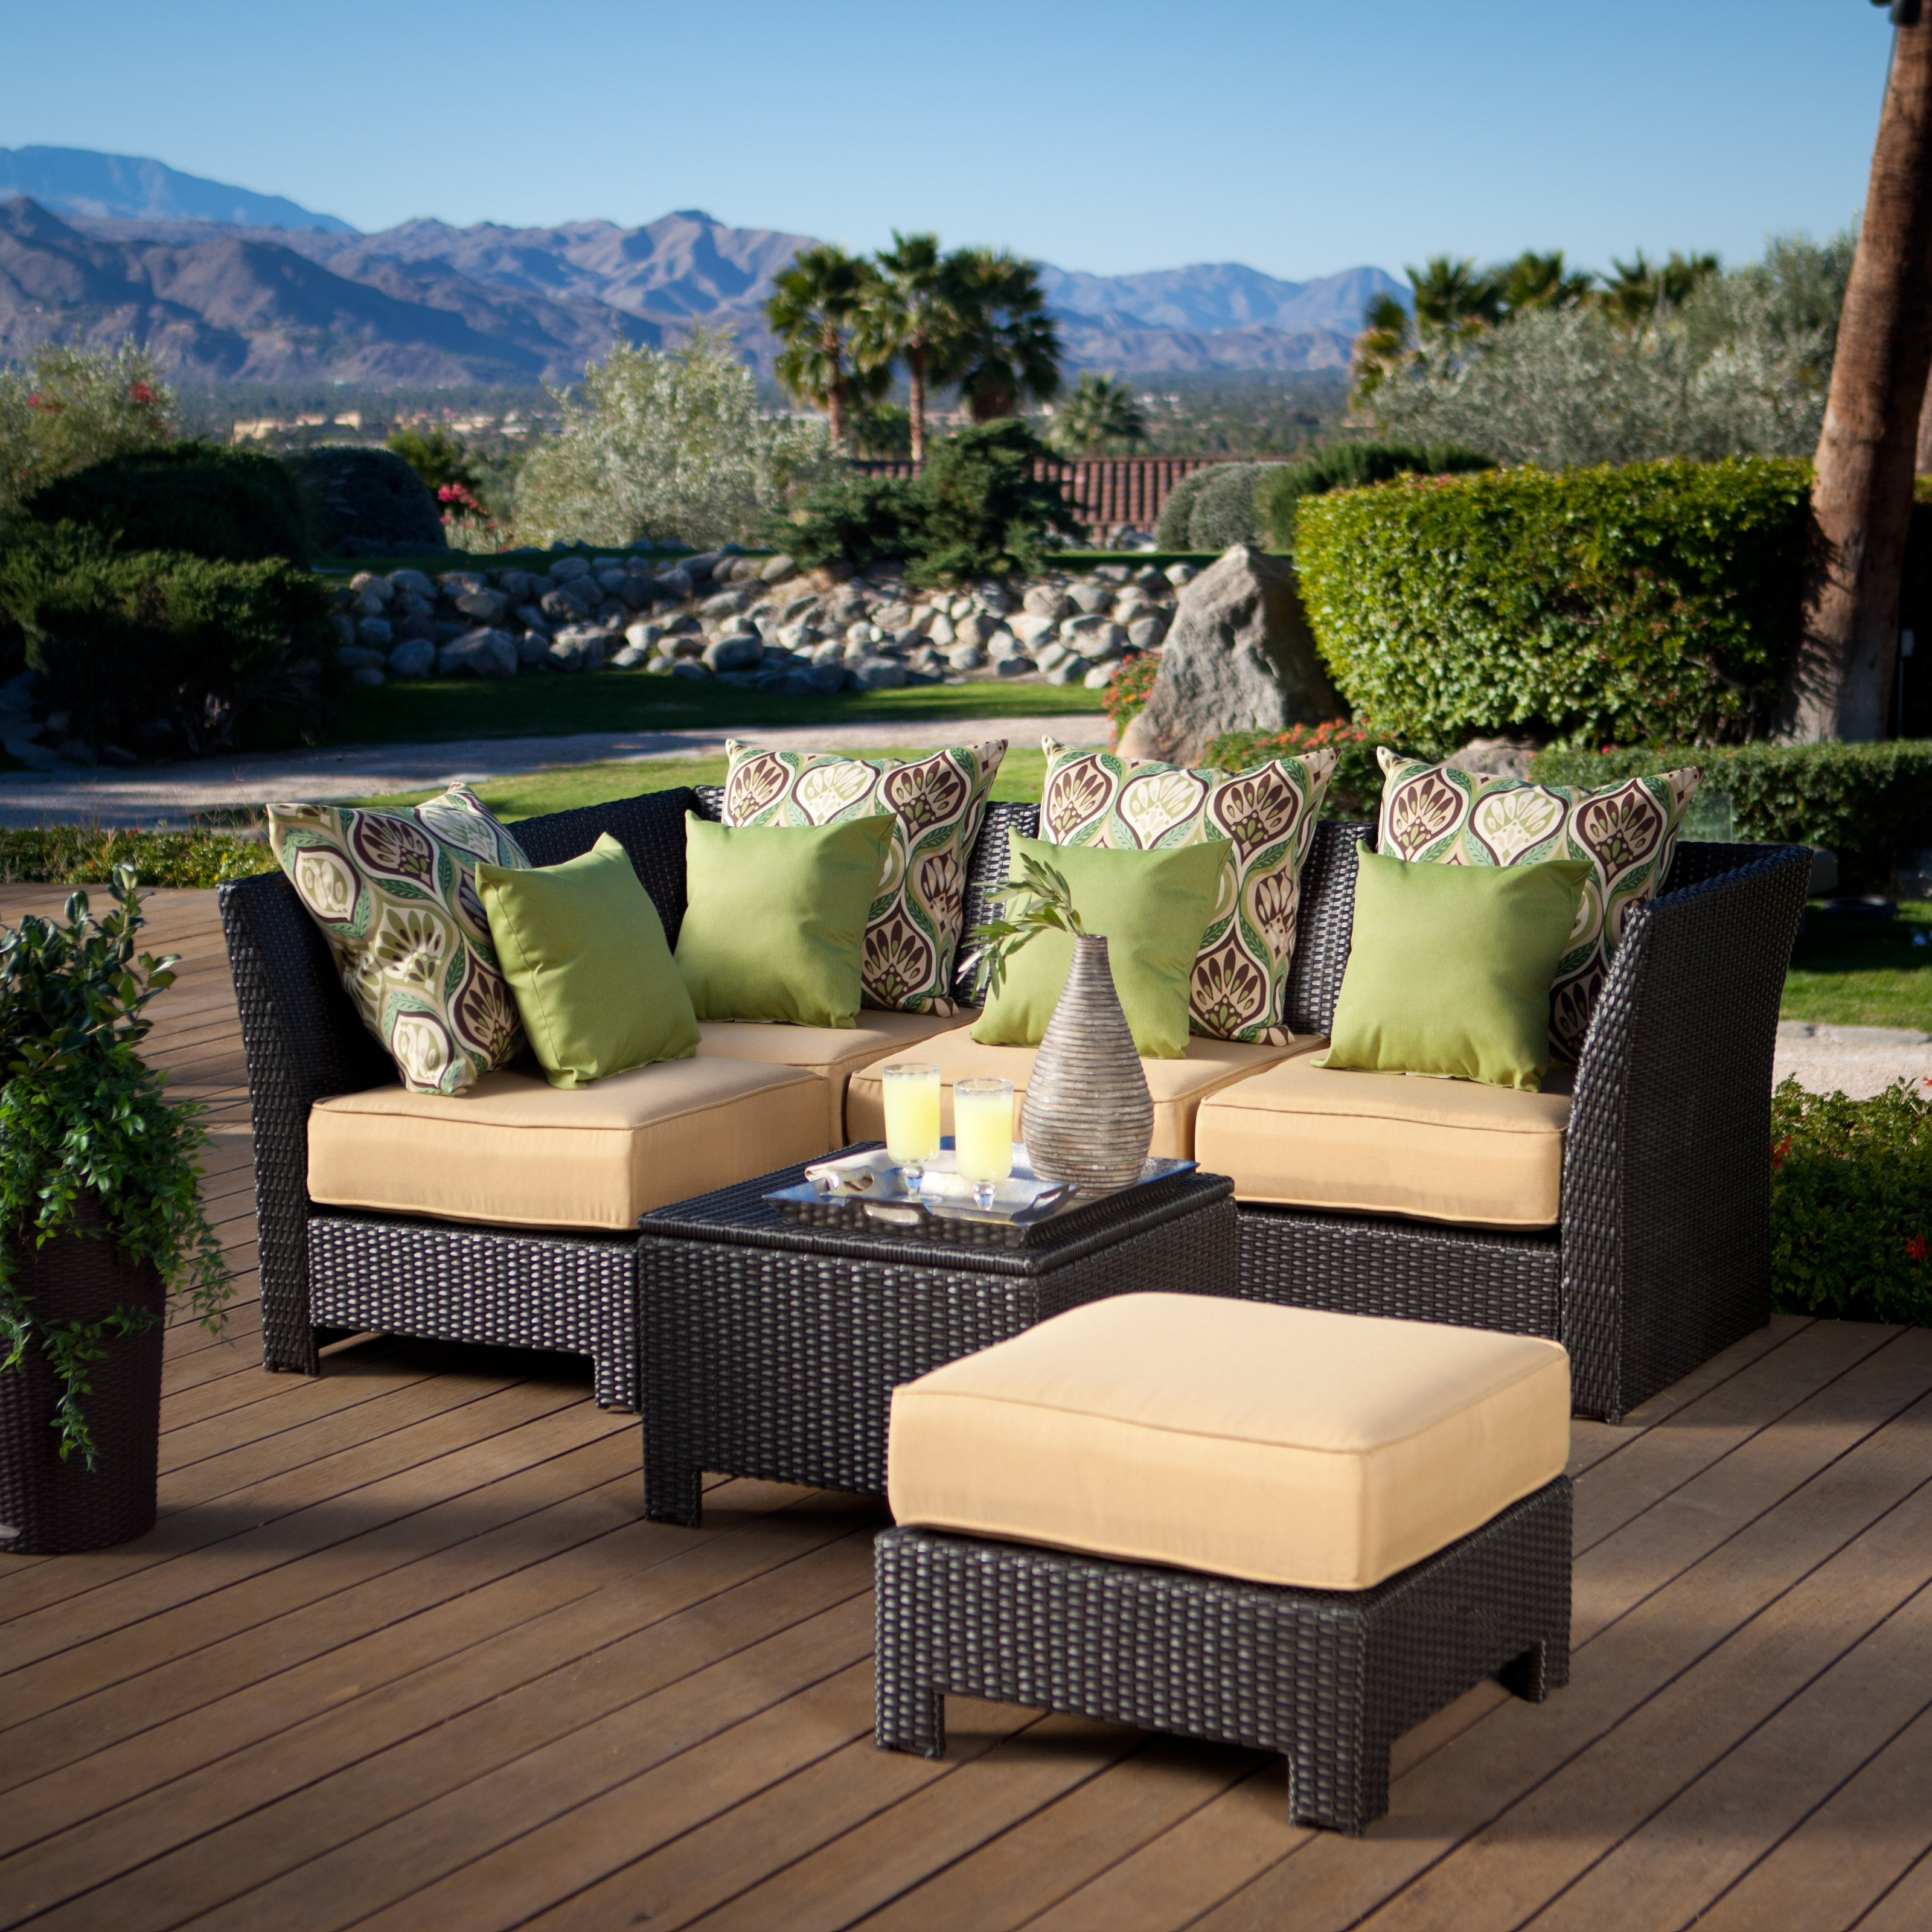 Big Lots Patio Umbrellas Pertaining To 2019 Furniture: New Remarkable Modern Big Lots Patio Furniture With (View 9 of 20)